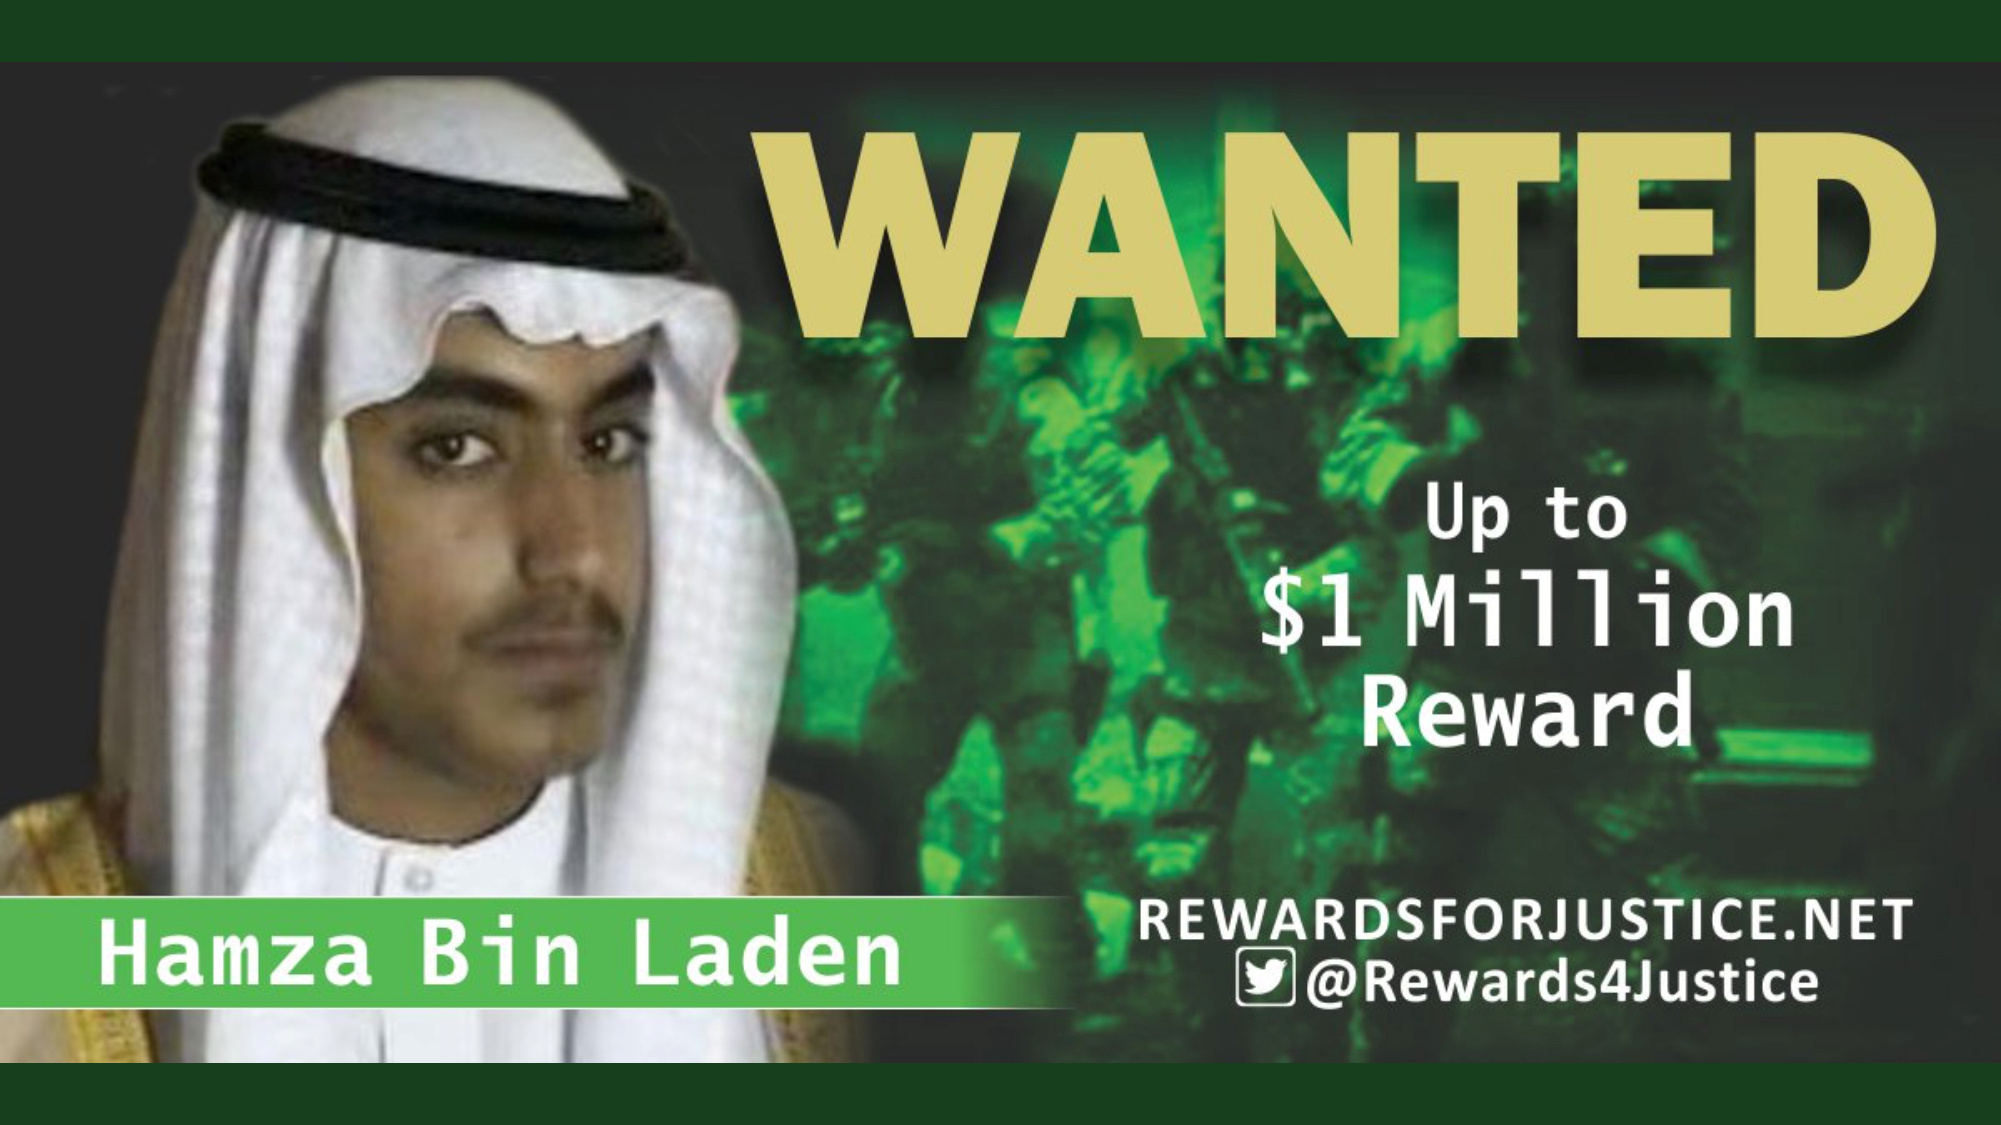 A photograph circulated by the U.S. State Department's Twitter account to announce a $1 million USD reward for al Qaeda key leader Hamza bin Laden, son of Osama bin Laden, is seen March 1, 2019. (State Department/Handout via REUTERS)